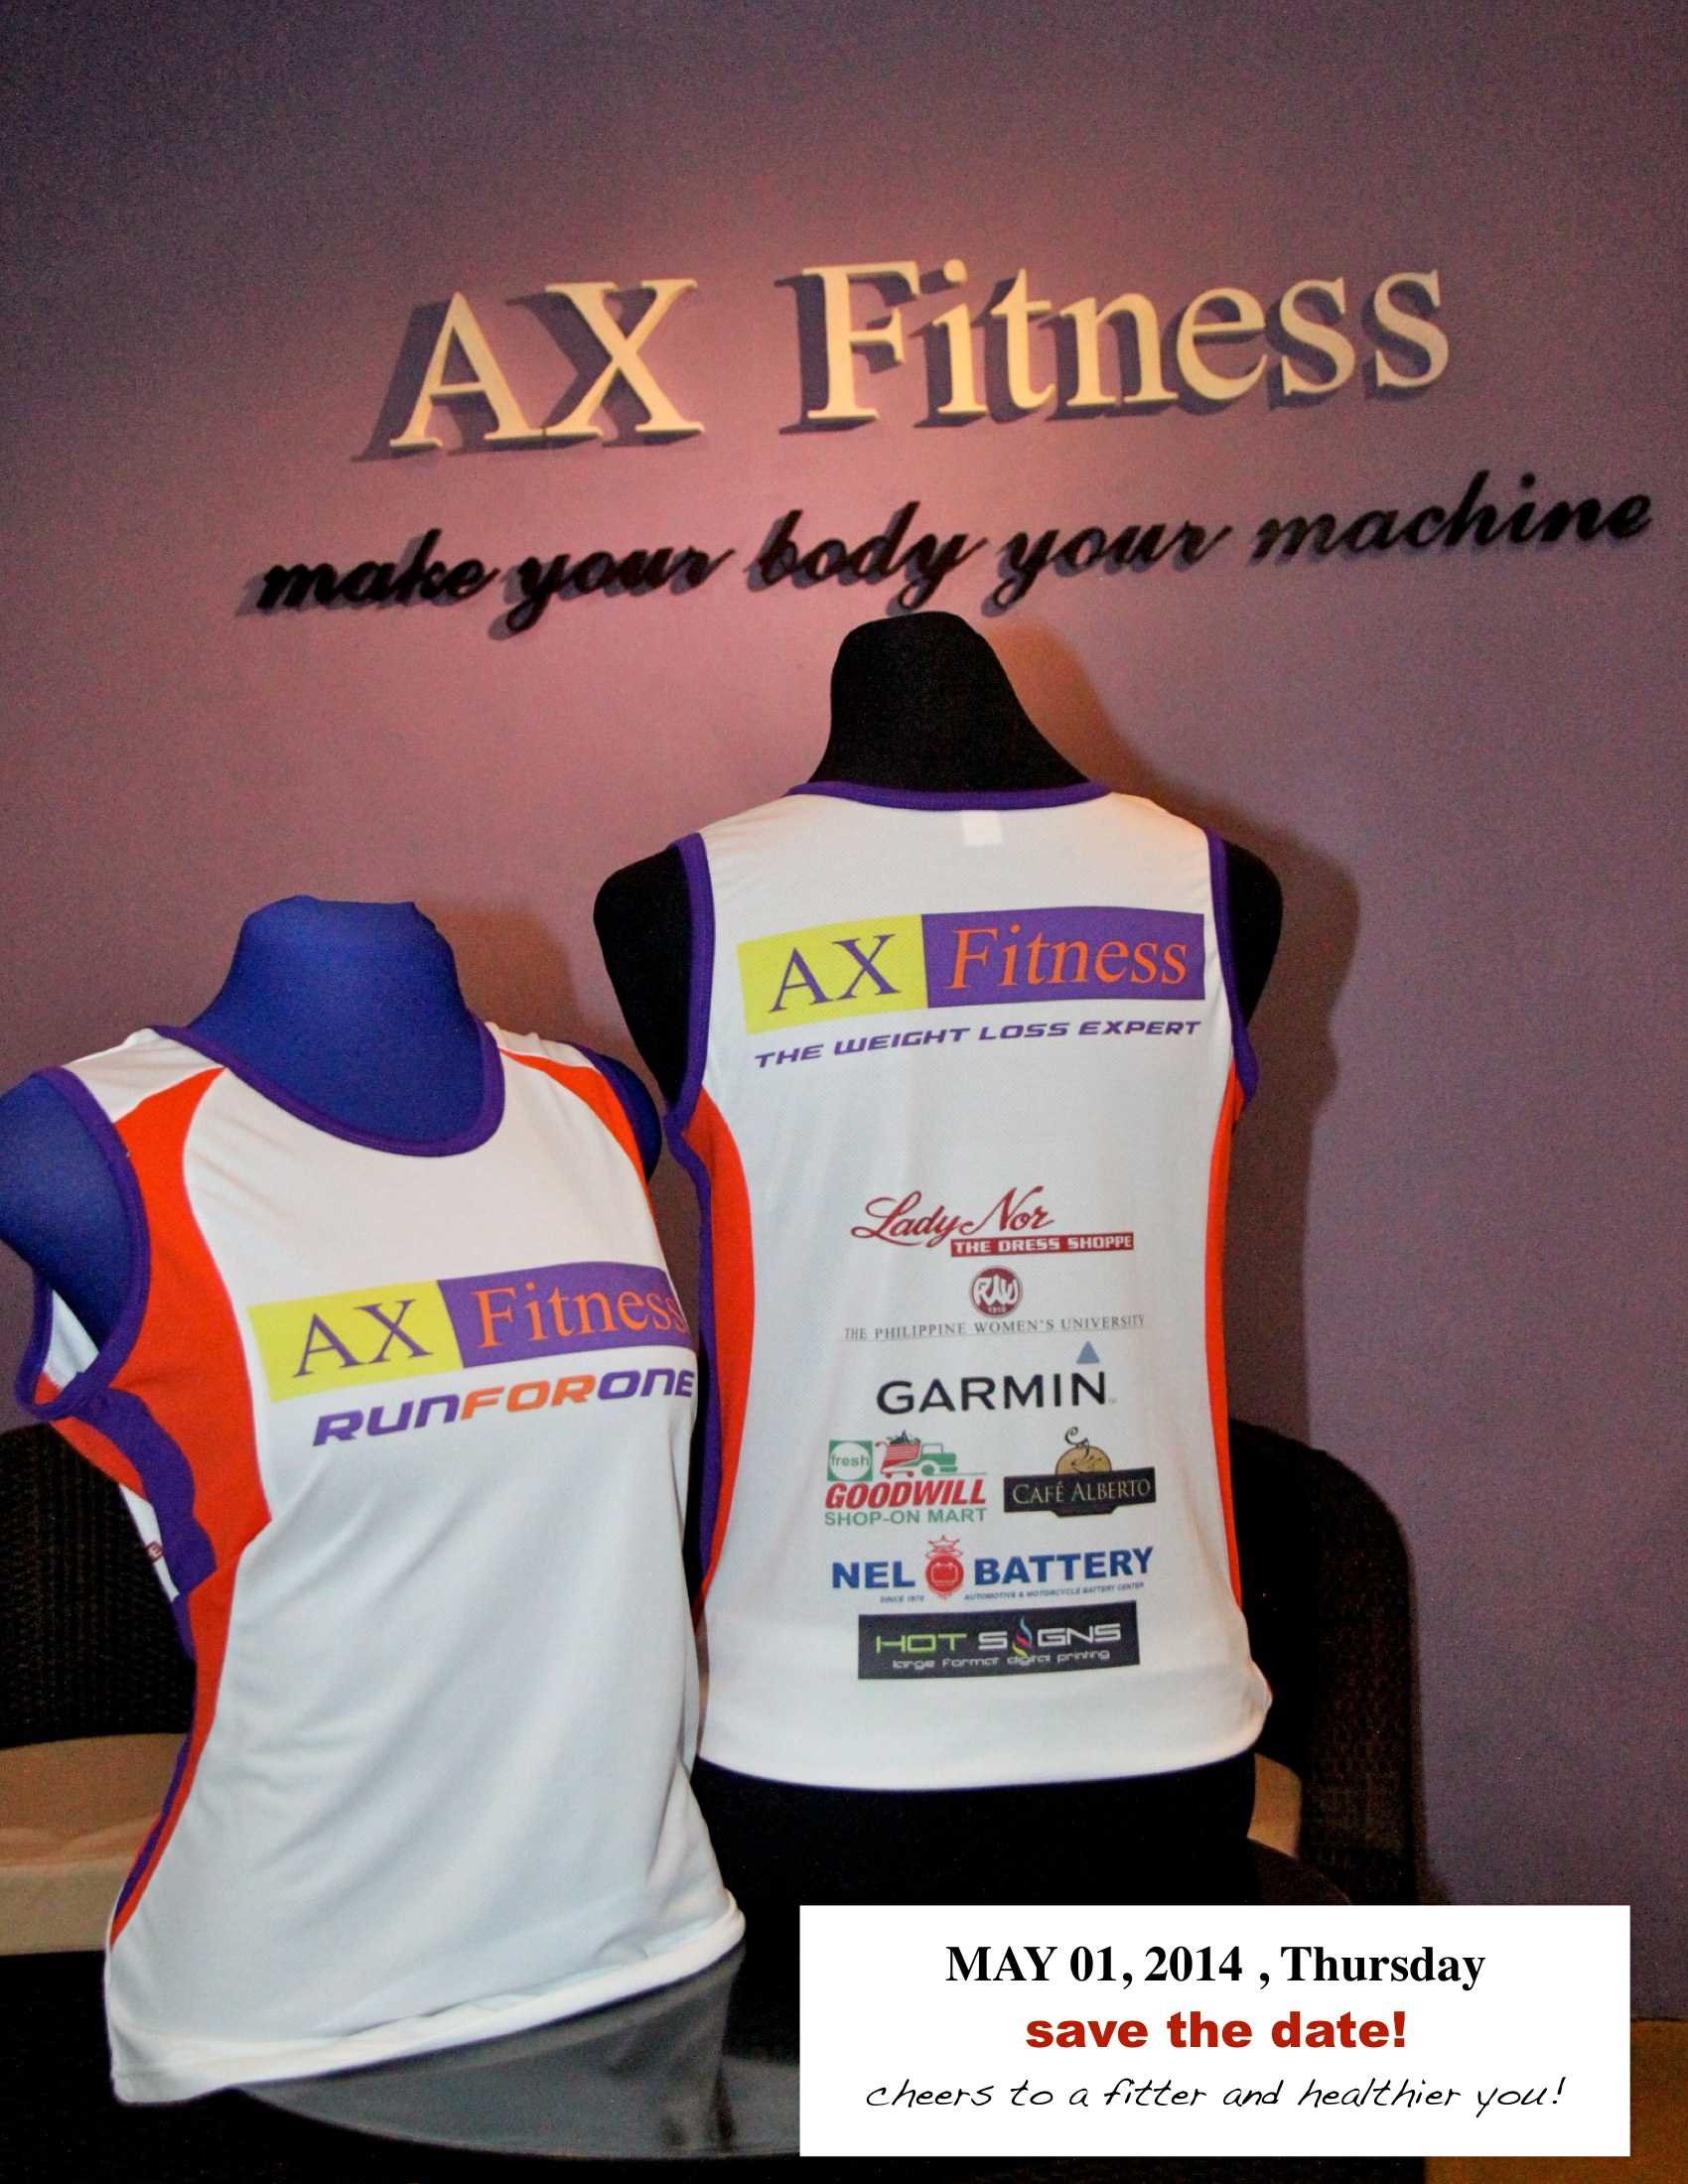 ax-fitness-run-for-one-2014-singlet